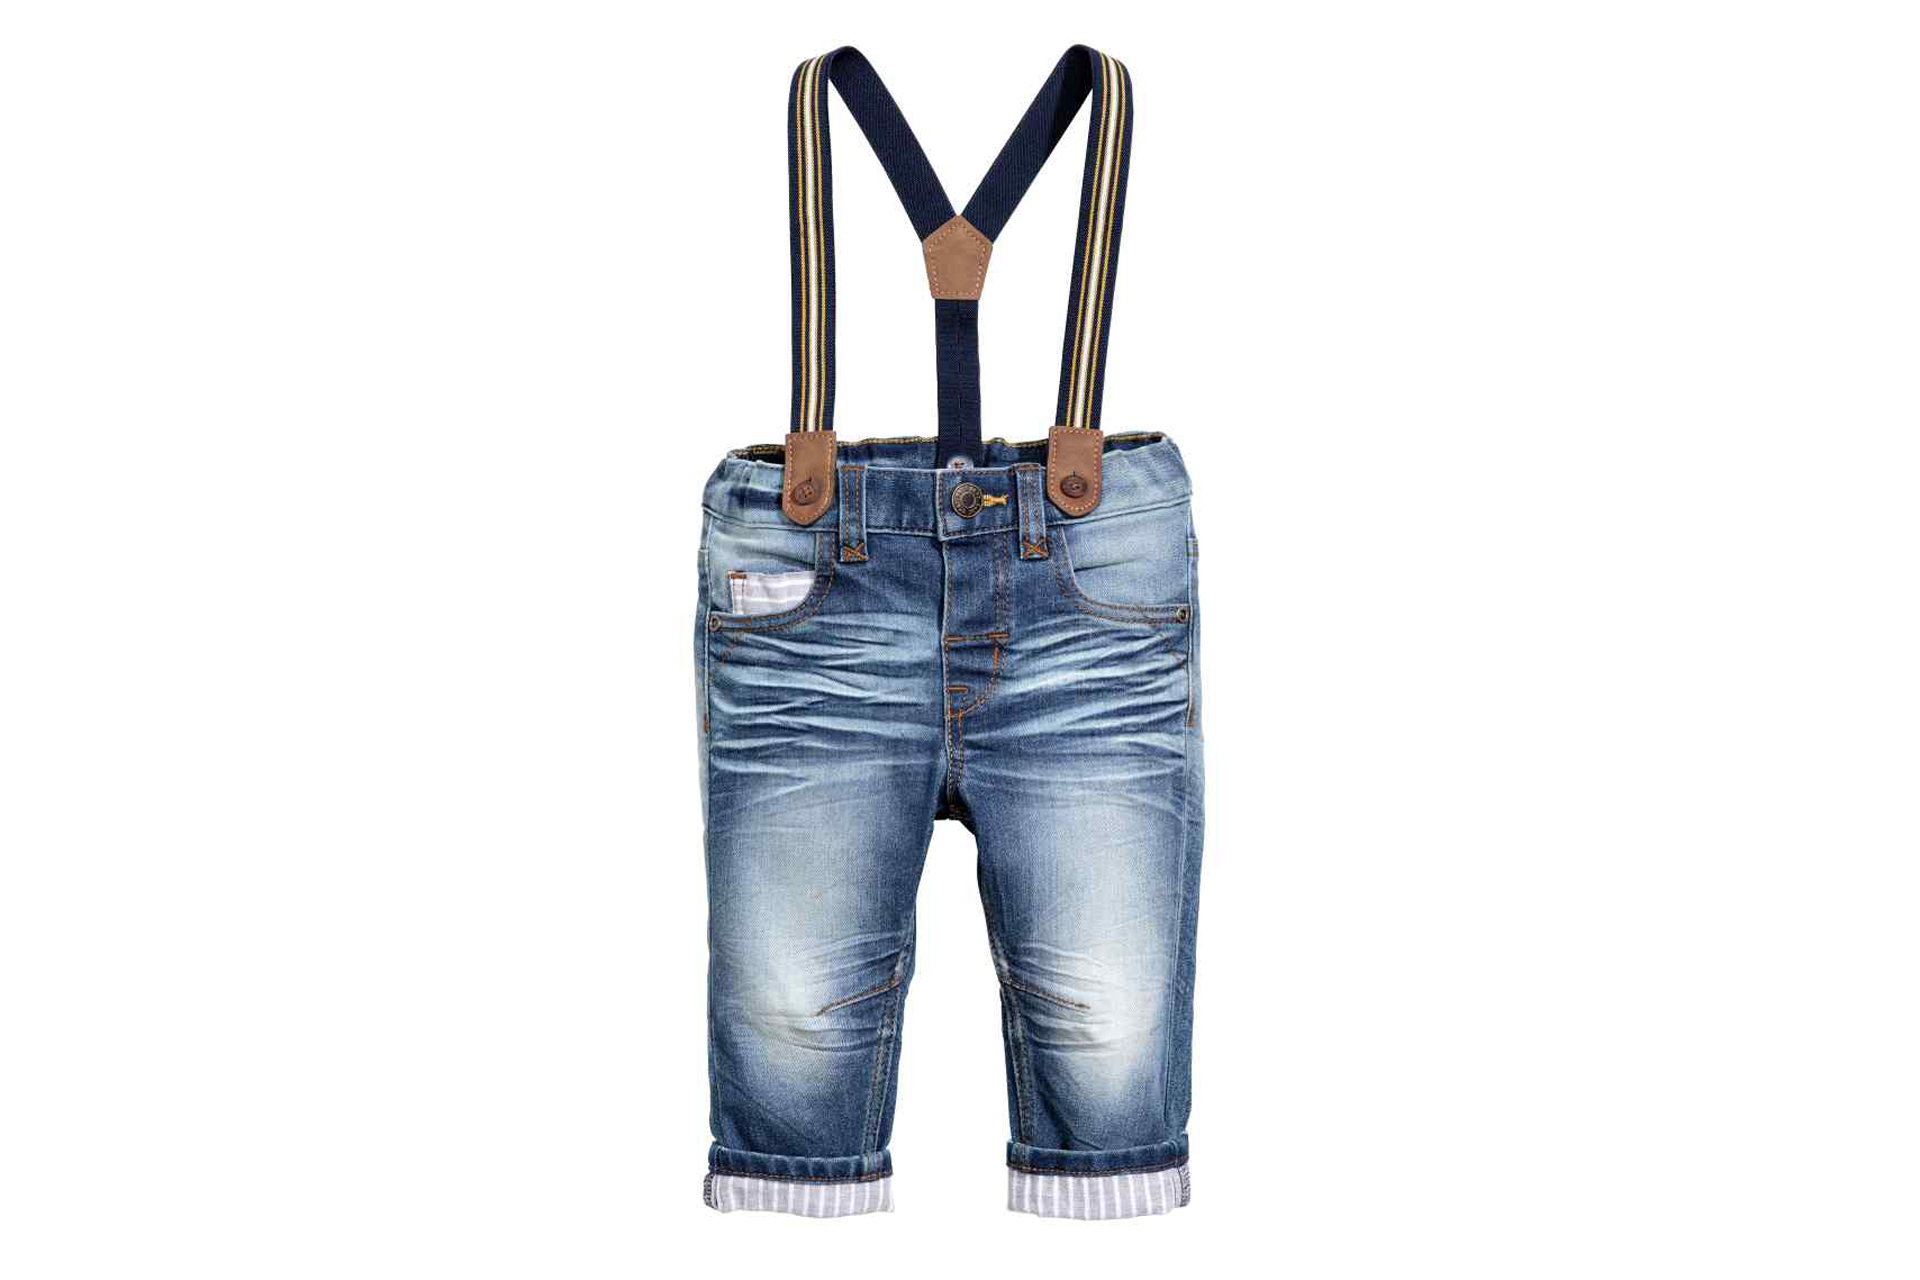 H&M Jeans with Braces